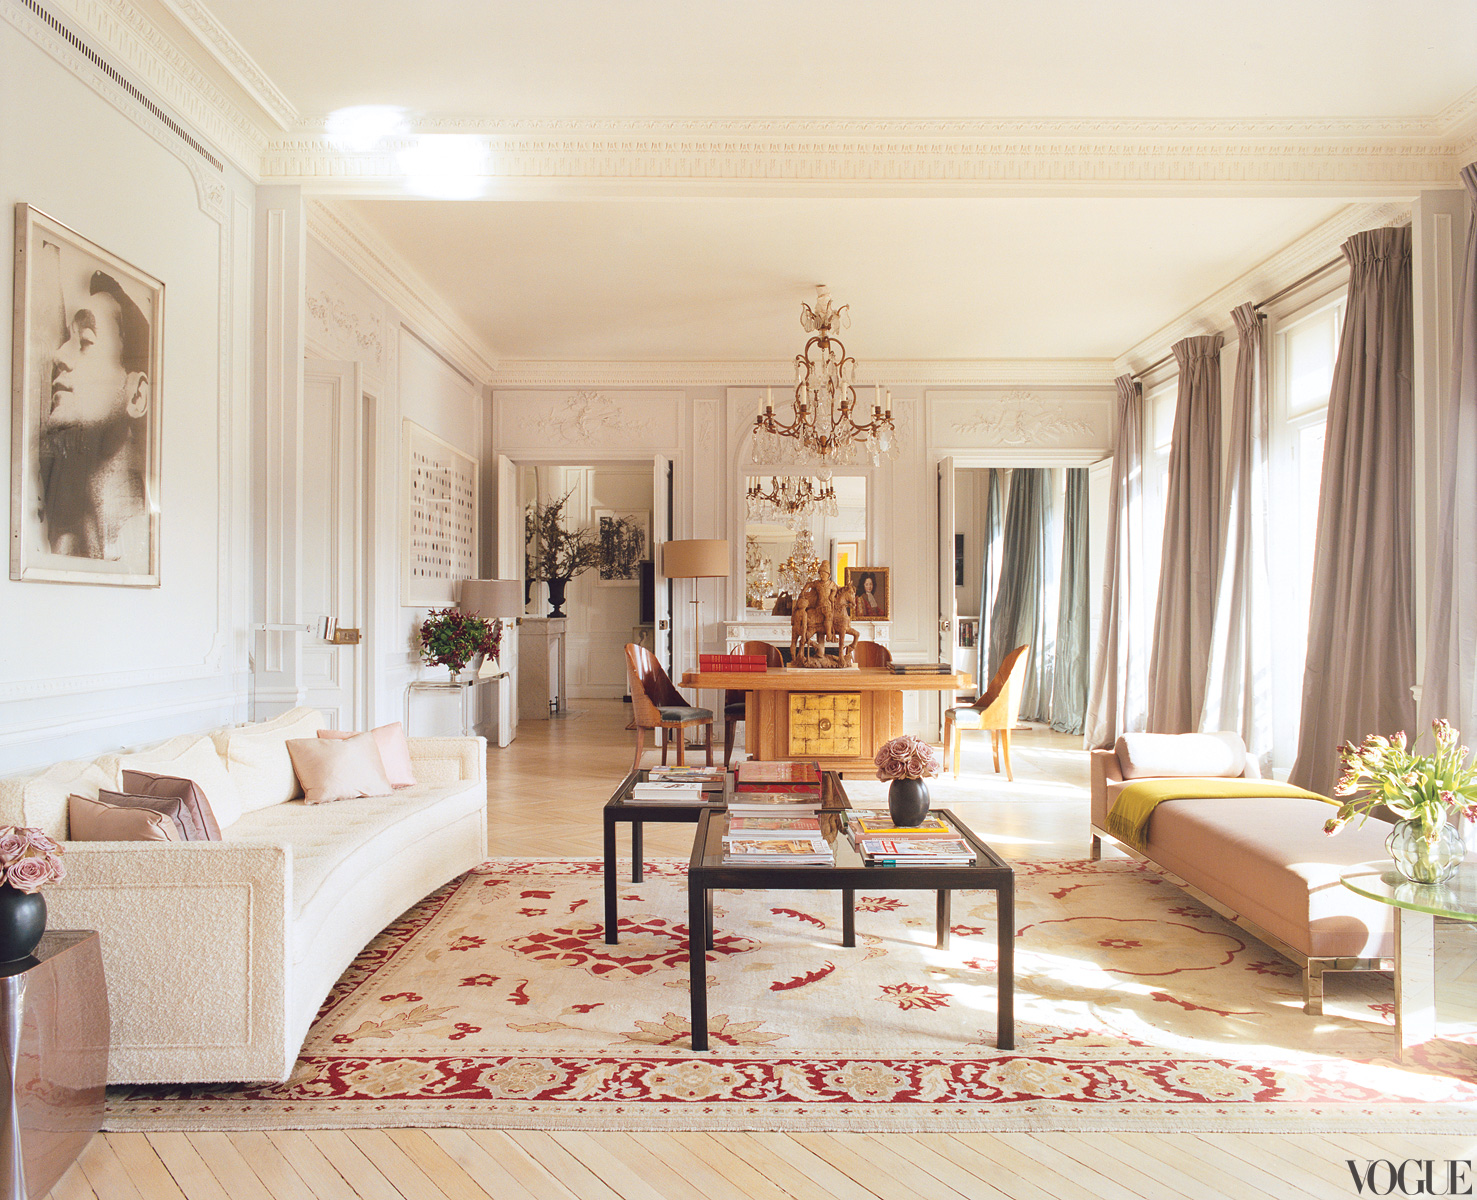 L'Wren Scott's Paris Apartment | on paris house interior, paris garden, paris clothing, paris house bedroom, paris paintings, paris fashion, paris jokes, paris food, paris cosmetics, paris life, paris love, paris beauty, paris coffee, paris school, paris interior design, paris sports, paris holiday, paris movies, paris house style, paris valentine's,